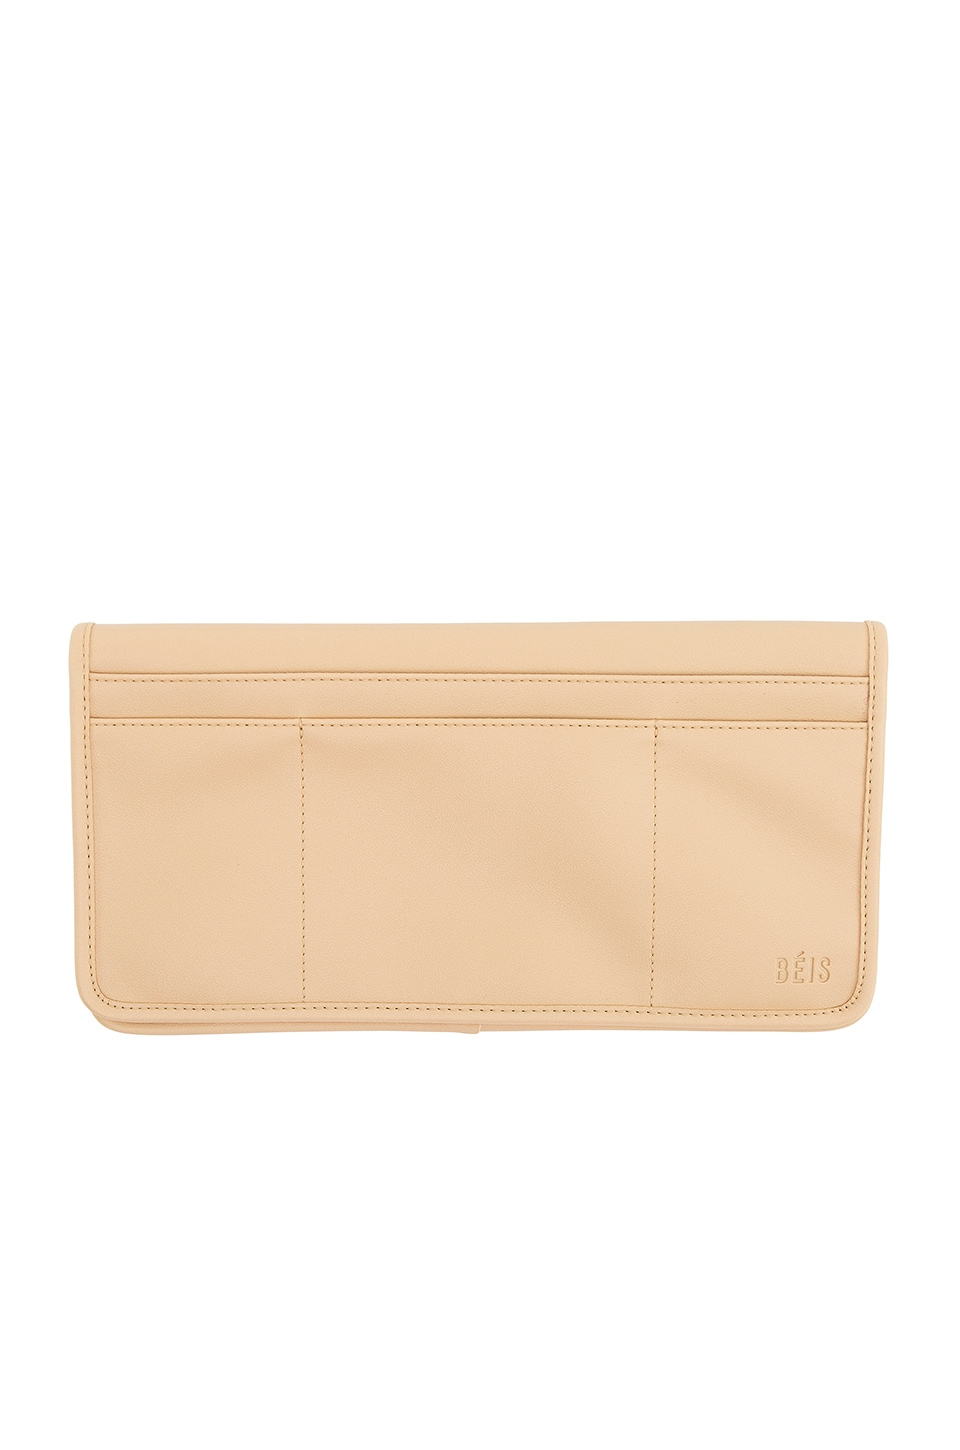 BEIS The Seatback Organizer in Beige